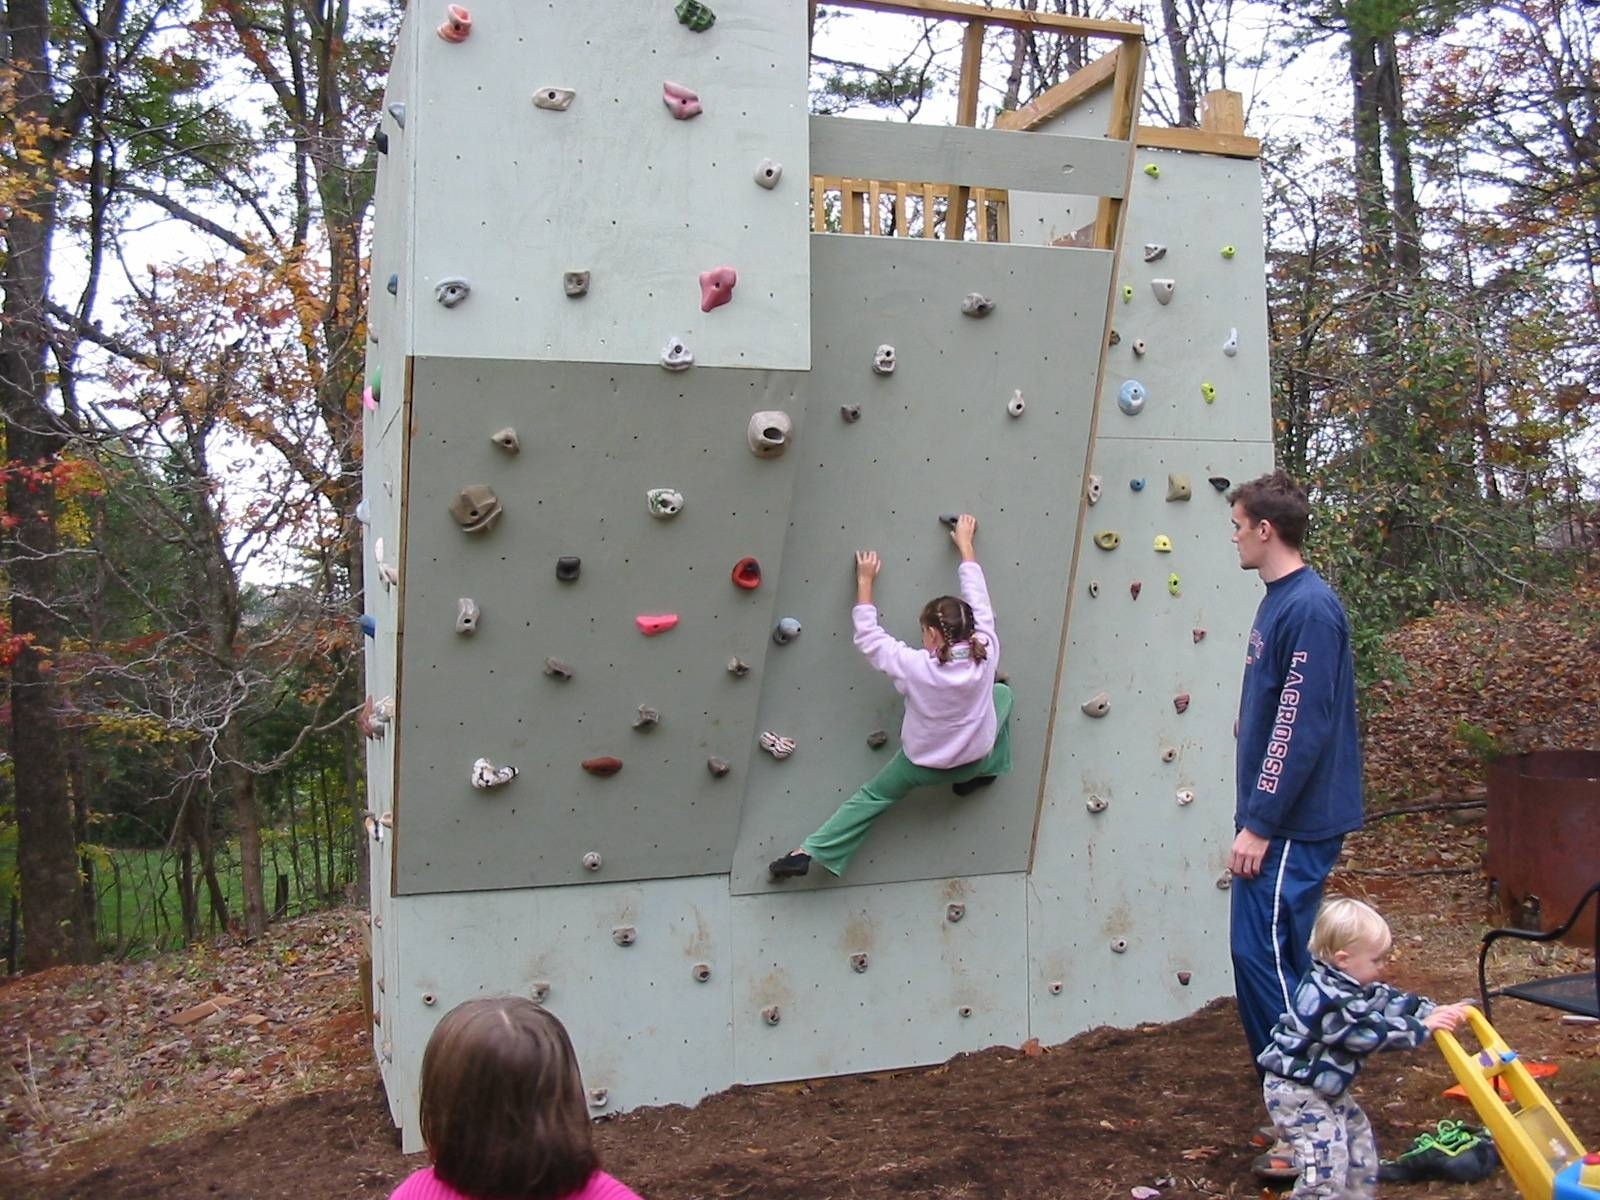 Home Climbing Wall Designs Plans Traverse Rock – Dma Homes | #23687 For Most Current Home Bouldering Wall Design (Gallery 5 of 20)